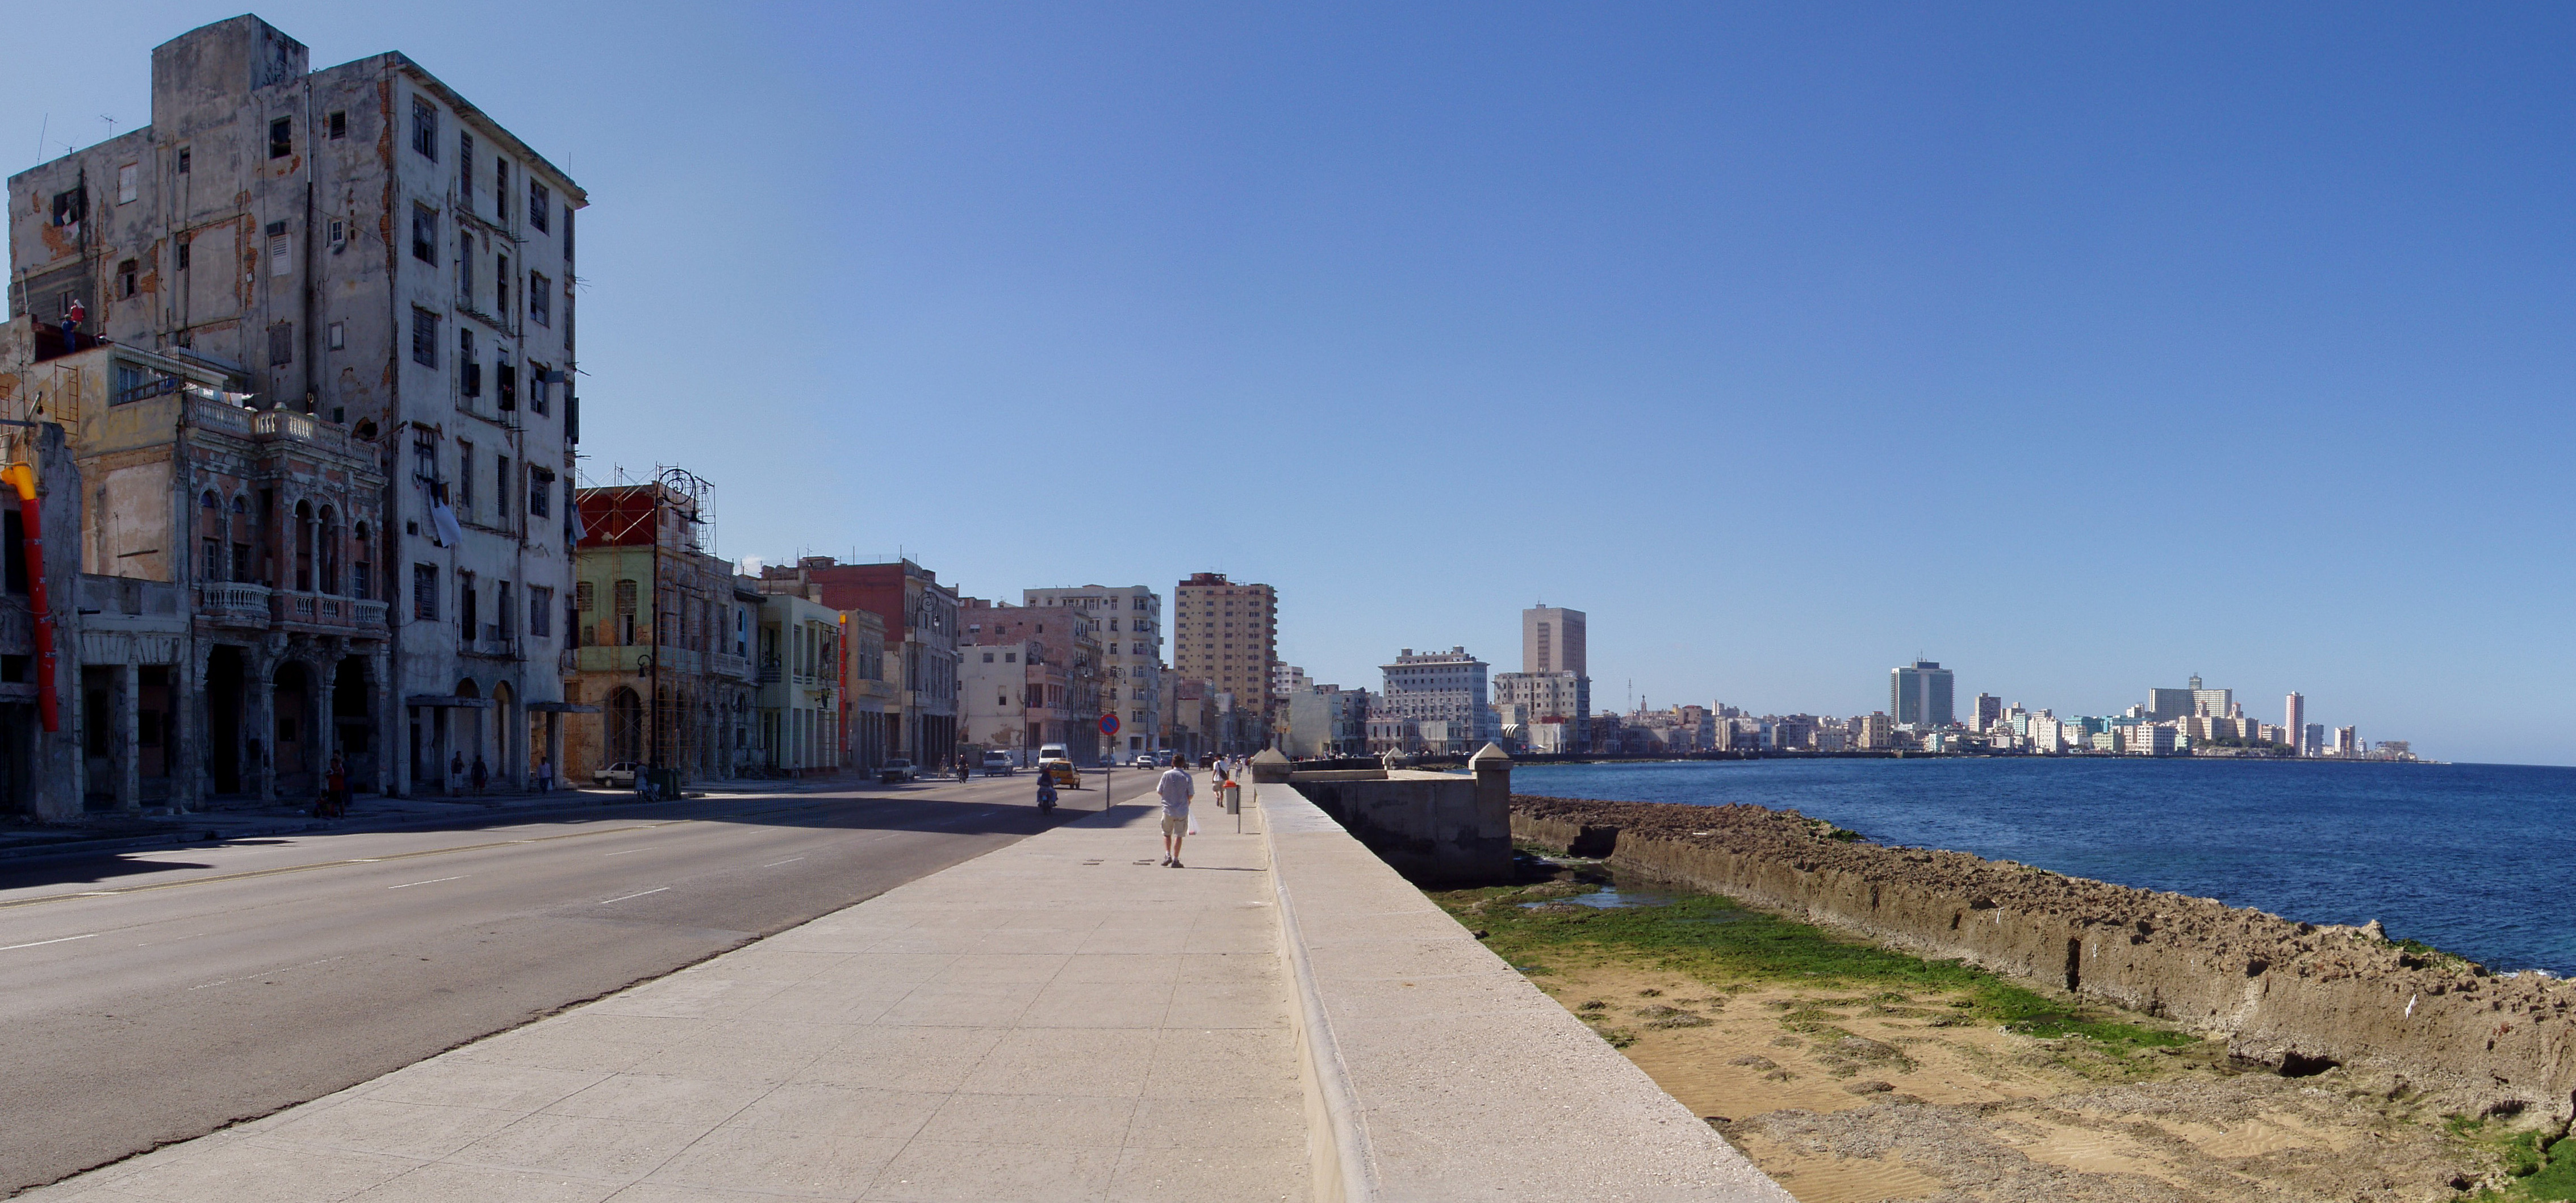 File:Malecón am Tag.jpg - Wikimedia Commons